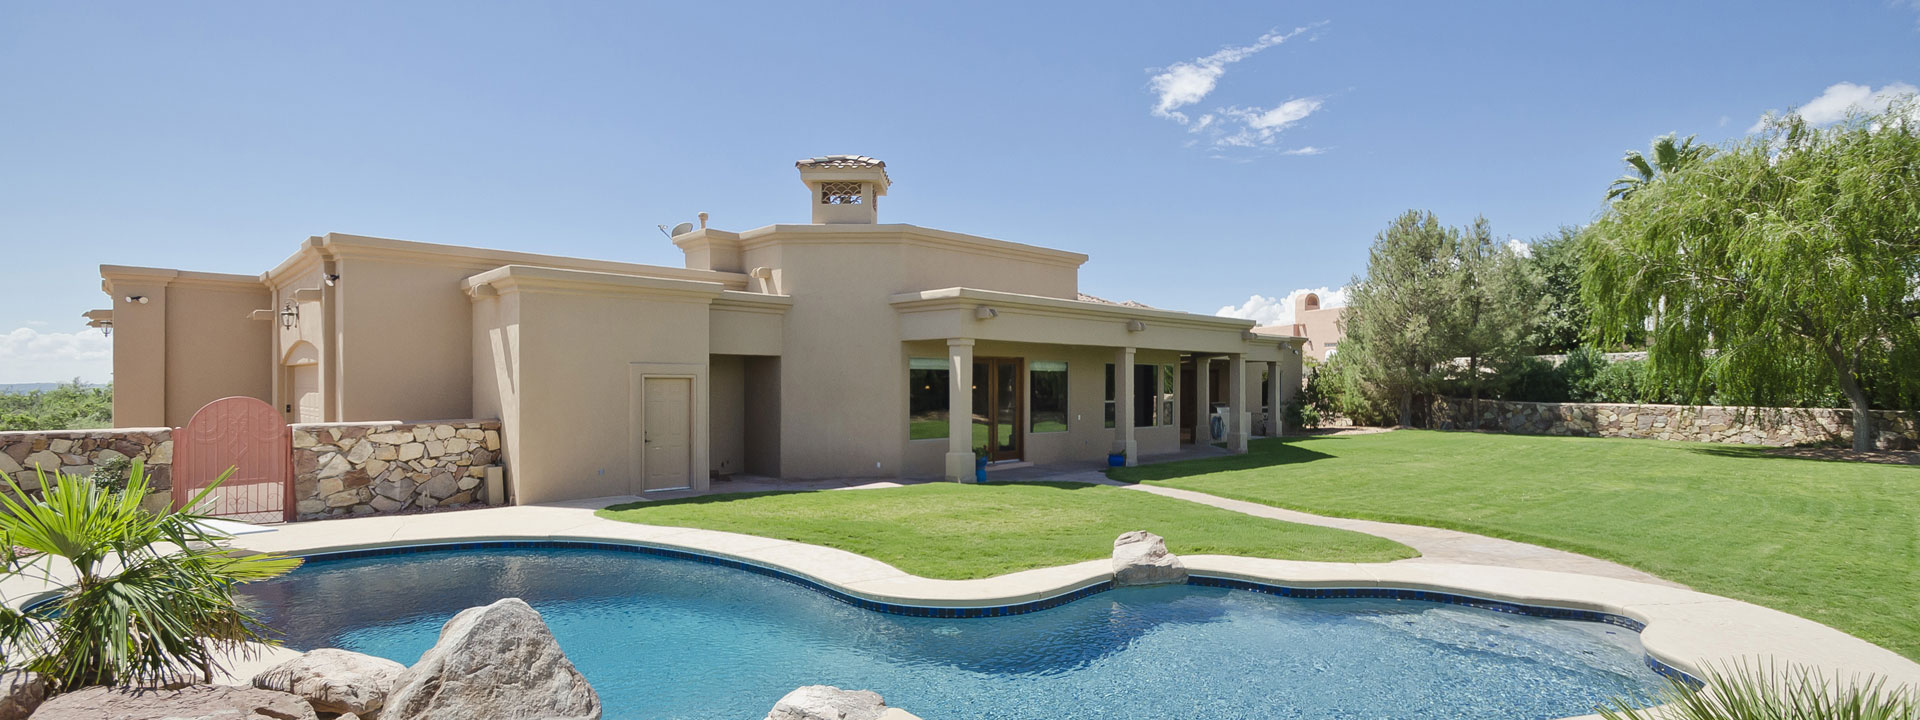 Exit Horizons Las Cruces Real Estate Home Search In